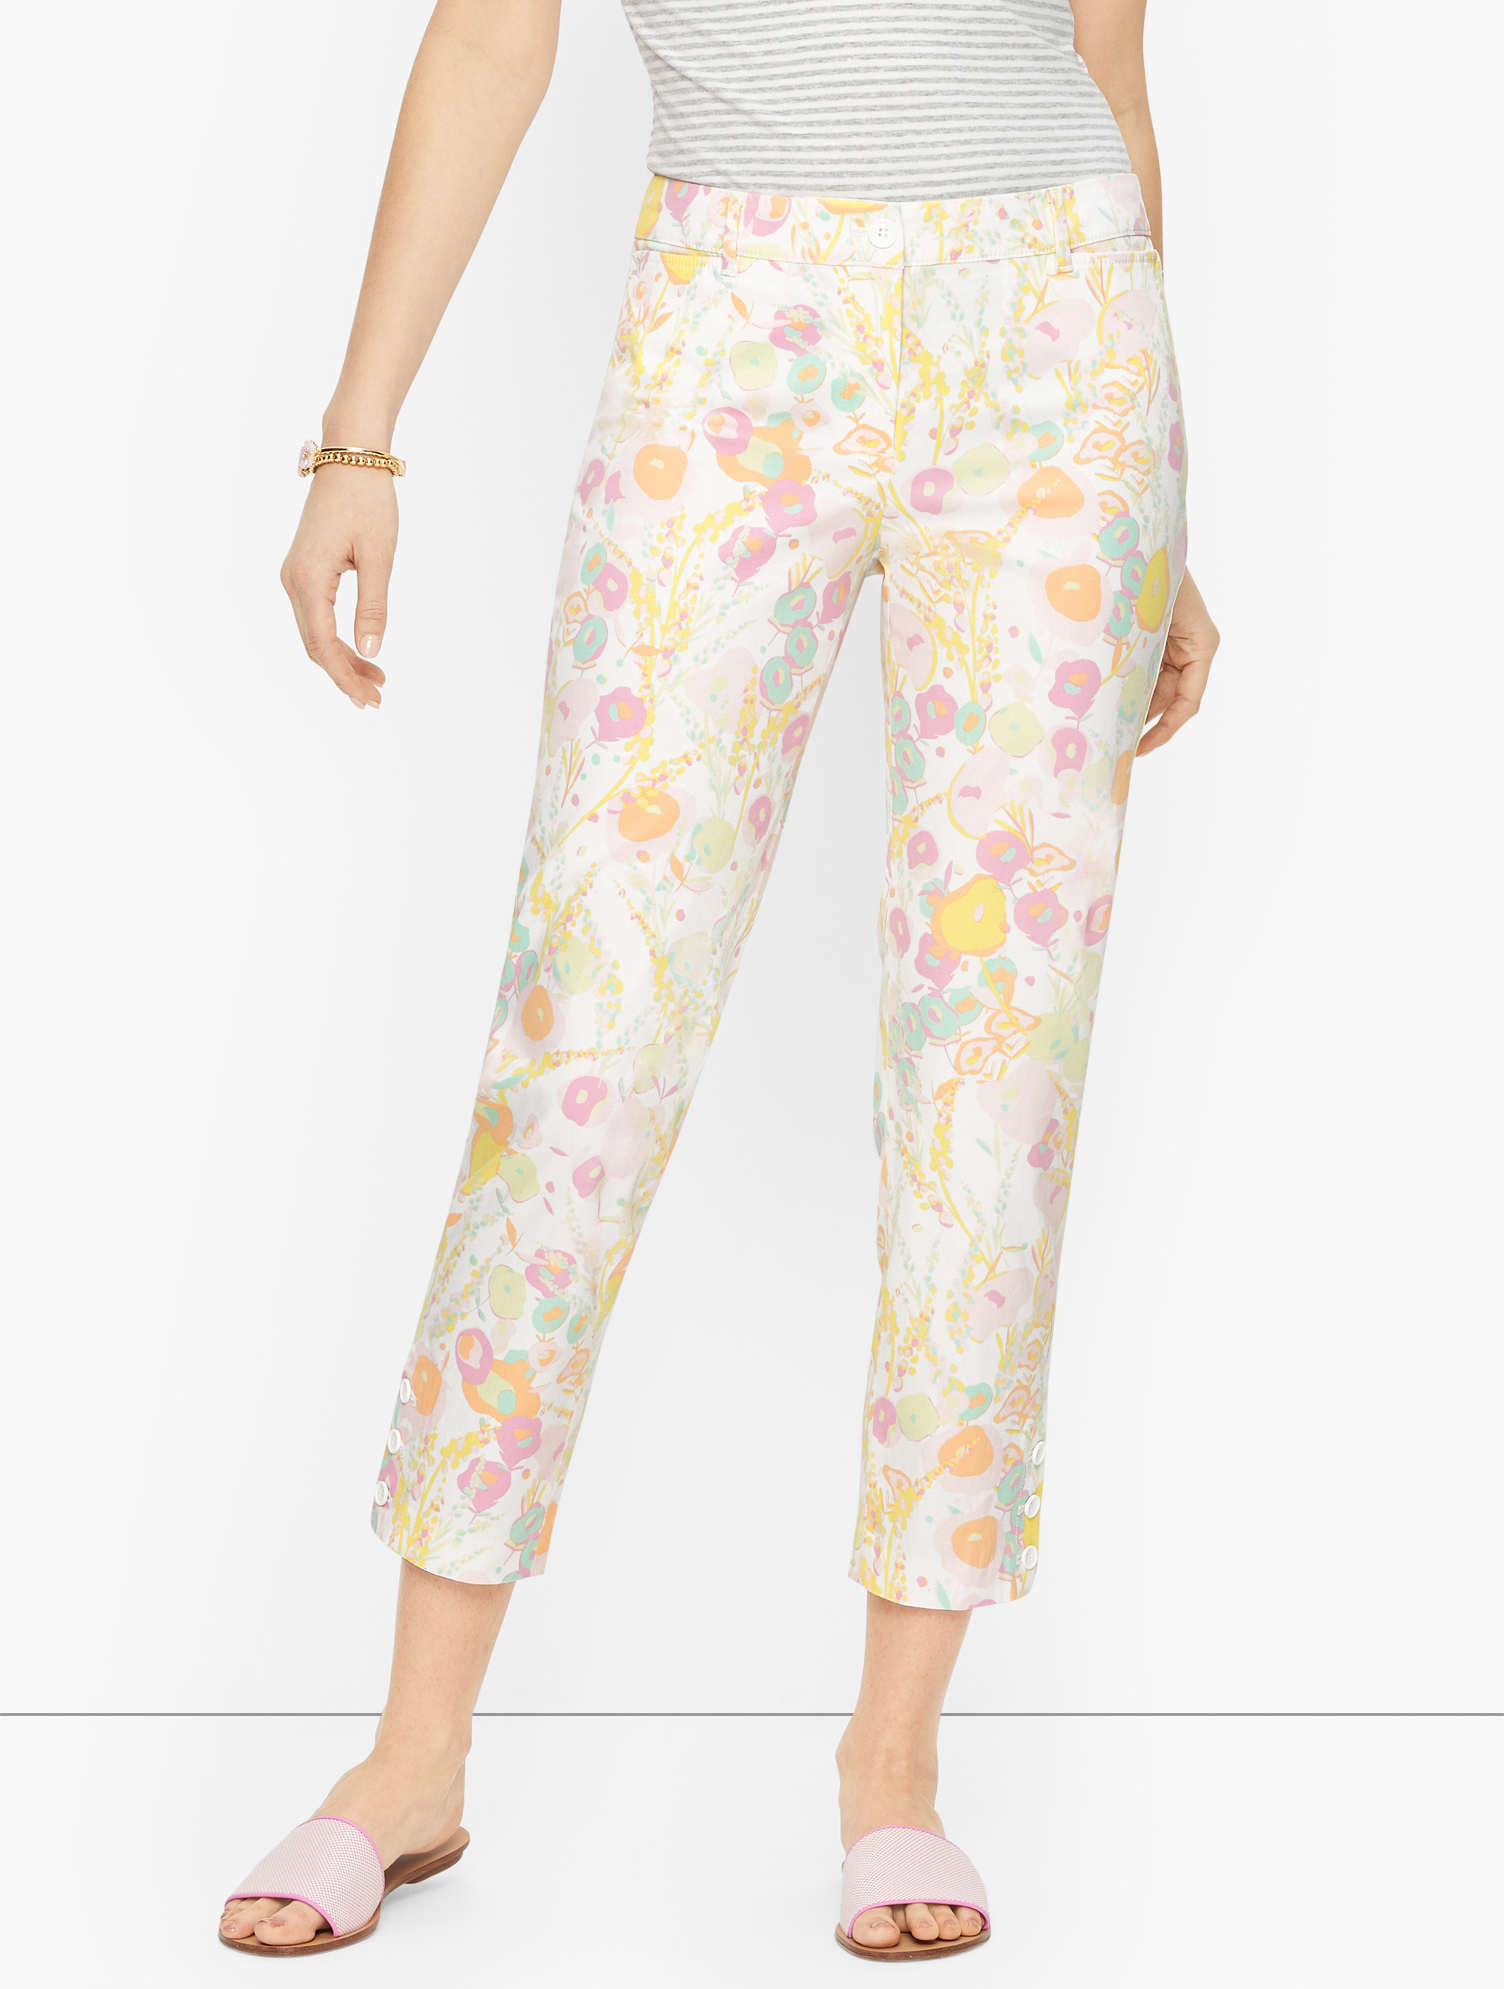 60s Mod Clothing Outfit Ideas Perfect Crops Pants - Abstract Floral - White - 22 Talbots $99.00 AT vintagedancer.com